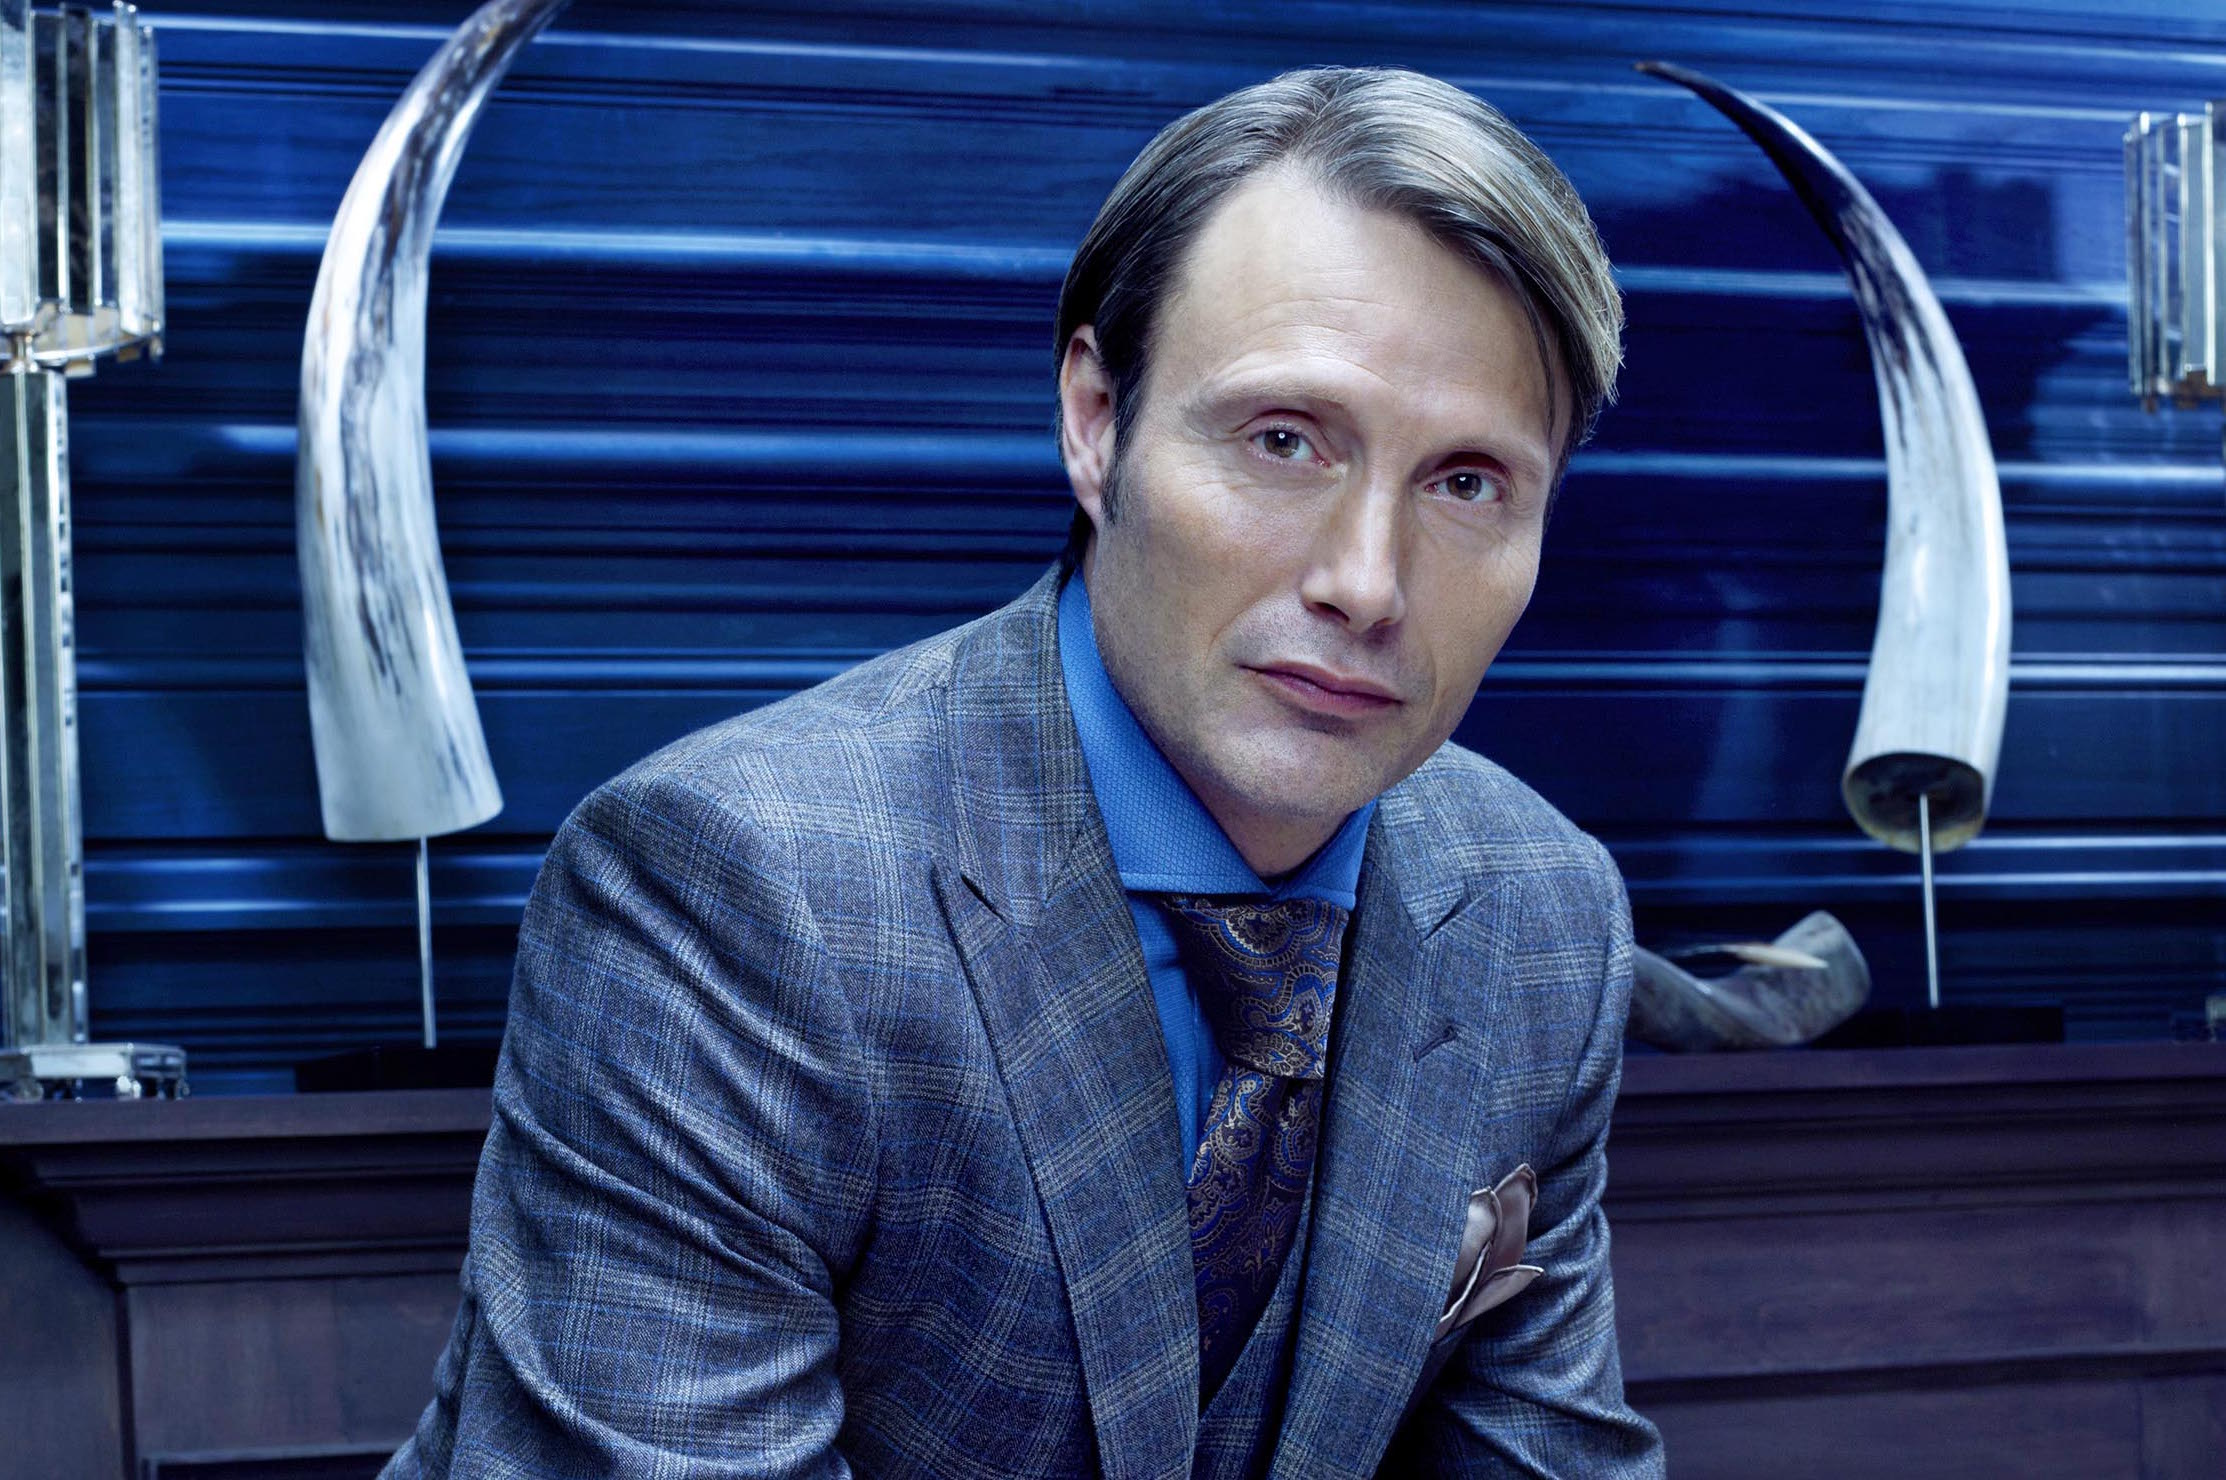 As 'Hannibal' Heads to Netflix, Mads Mikkelsen Stokes Fans: 'Is Season 4 On the Way?'